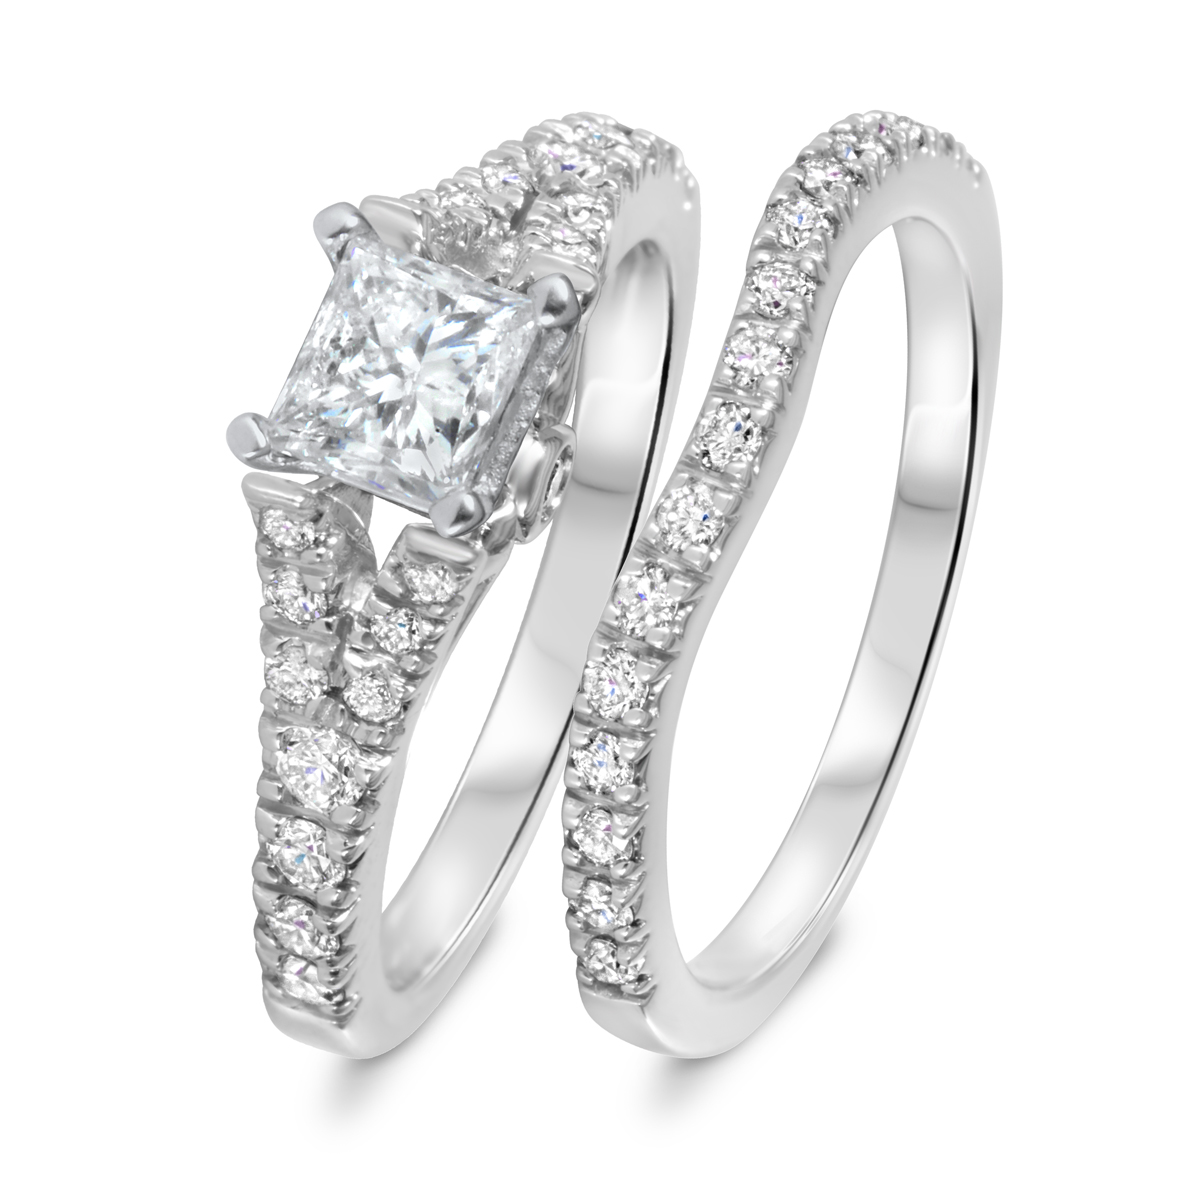 1 1/2 CT. T.W. Diamond Women's Bridal Wedding Ring Set 14K White Gold